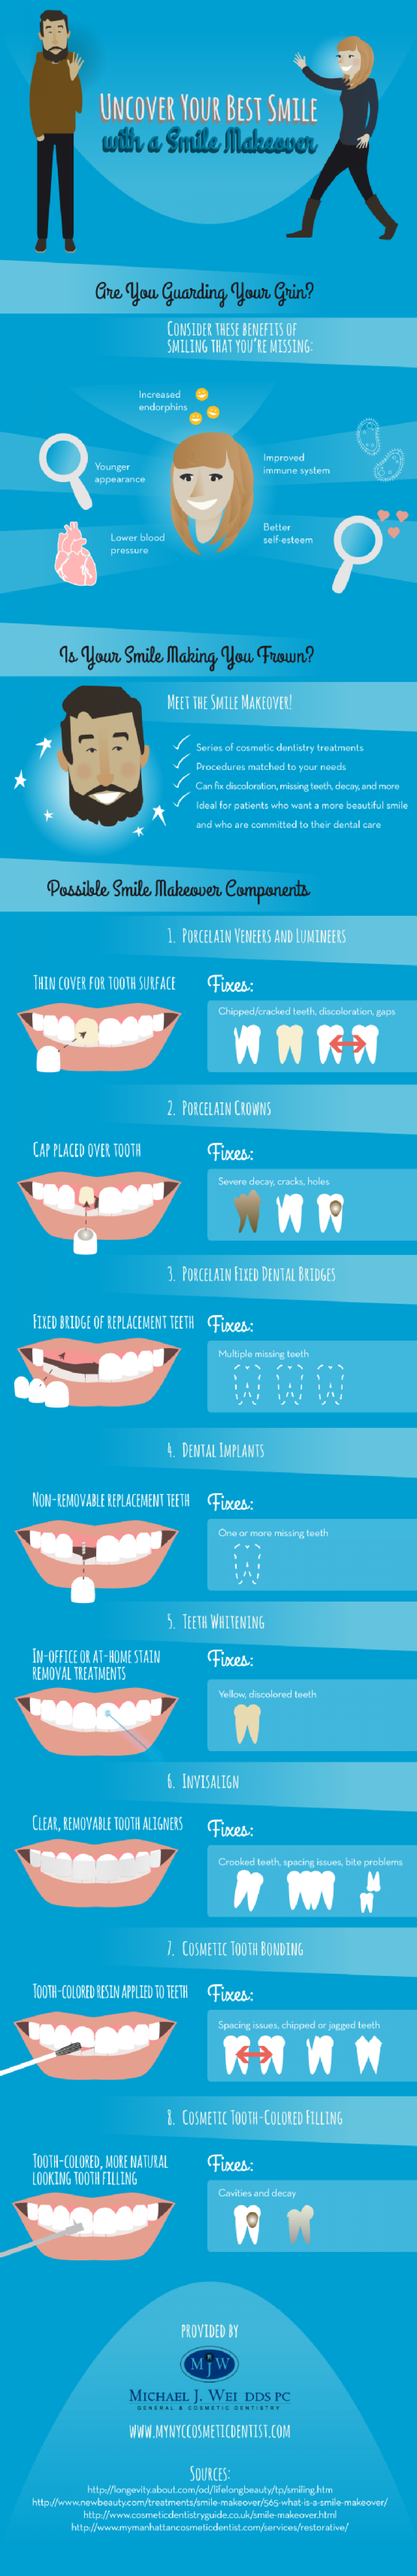 Uncover Your Best Smile with a Smile Makeover  Infographic